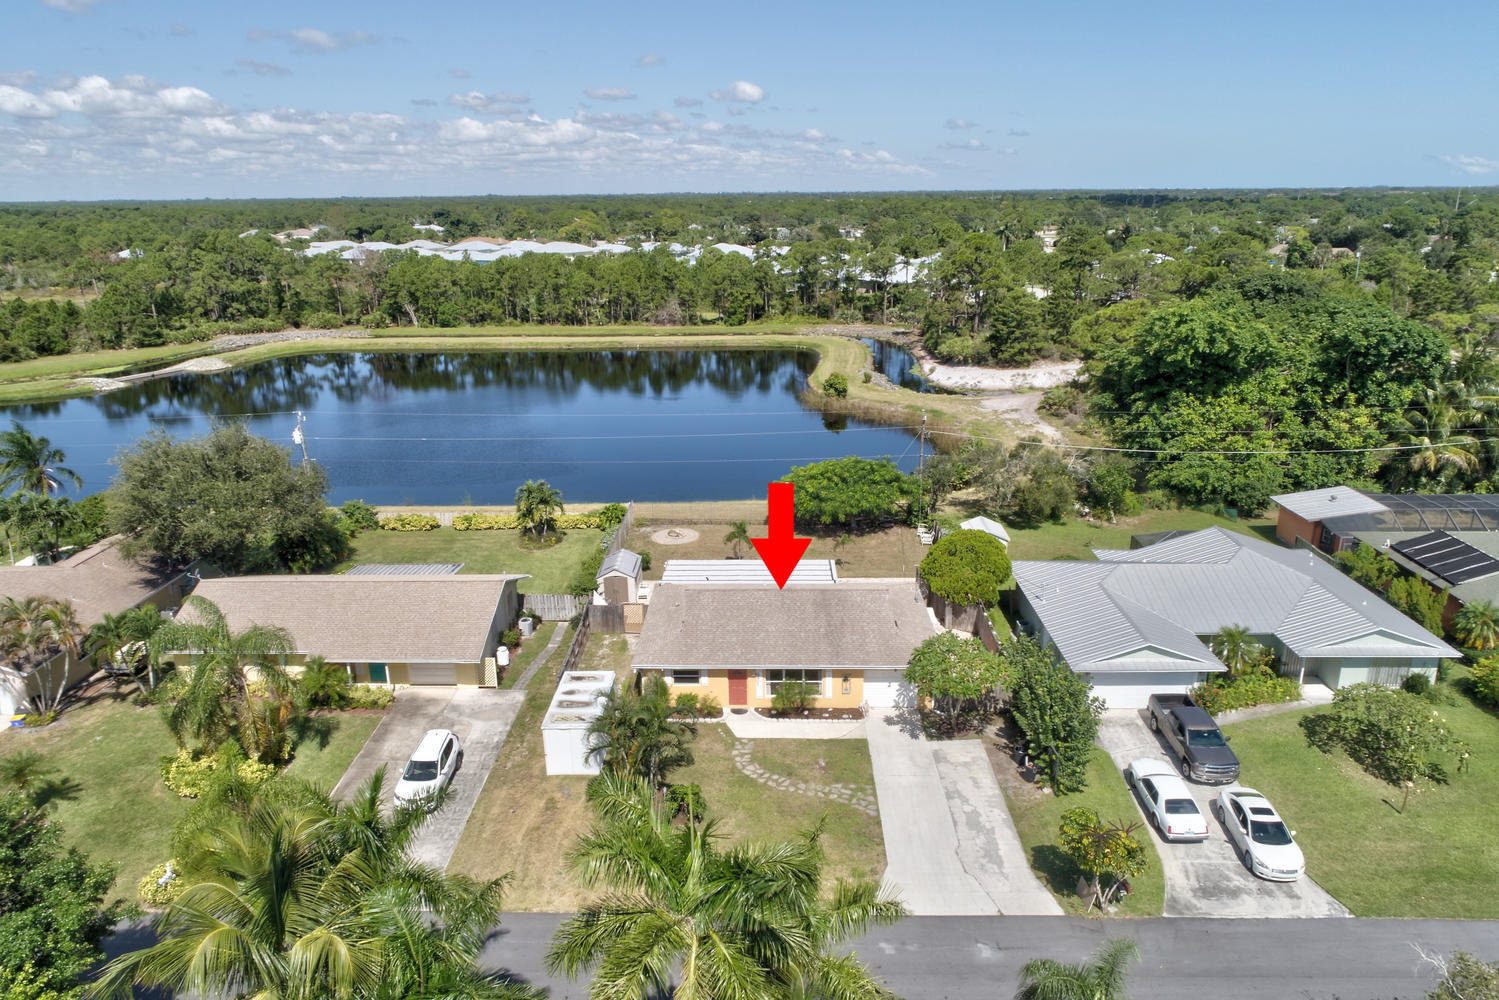 6421 SE Sherwood Street 33455 - One of Hobe Sound Homes for Sale